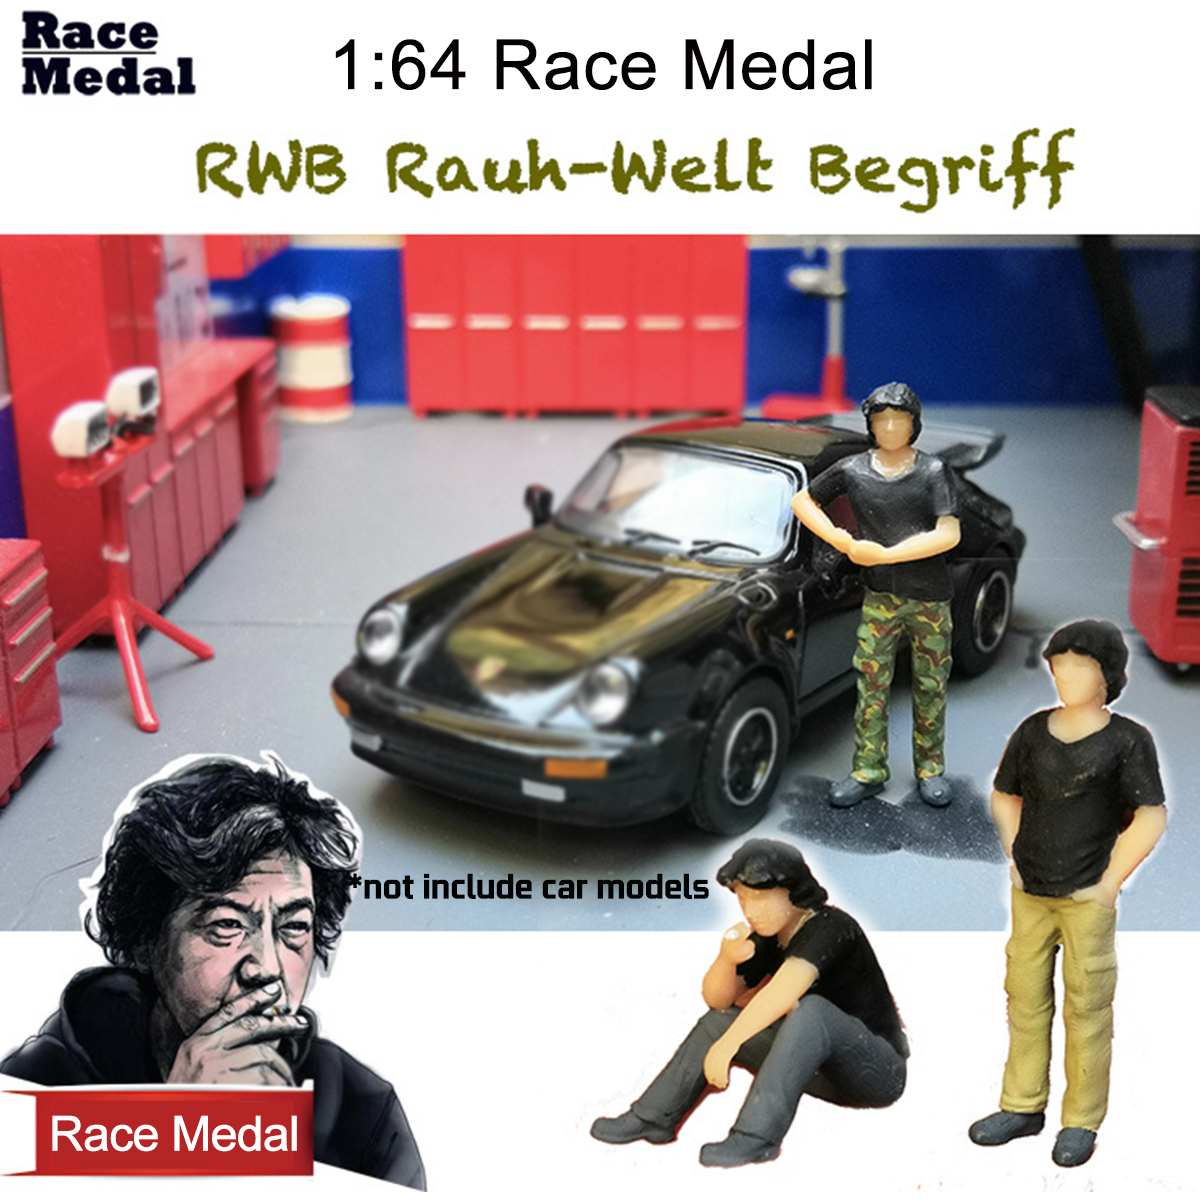 1:64 Scale City Model Car Repair Man Figure Scenario Model For Race Medal Matchbox Chirldren Toy Group People Mode